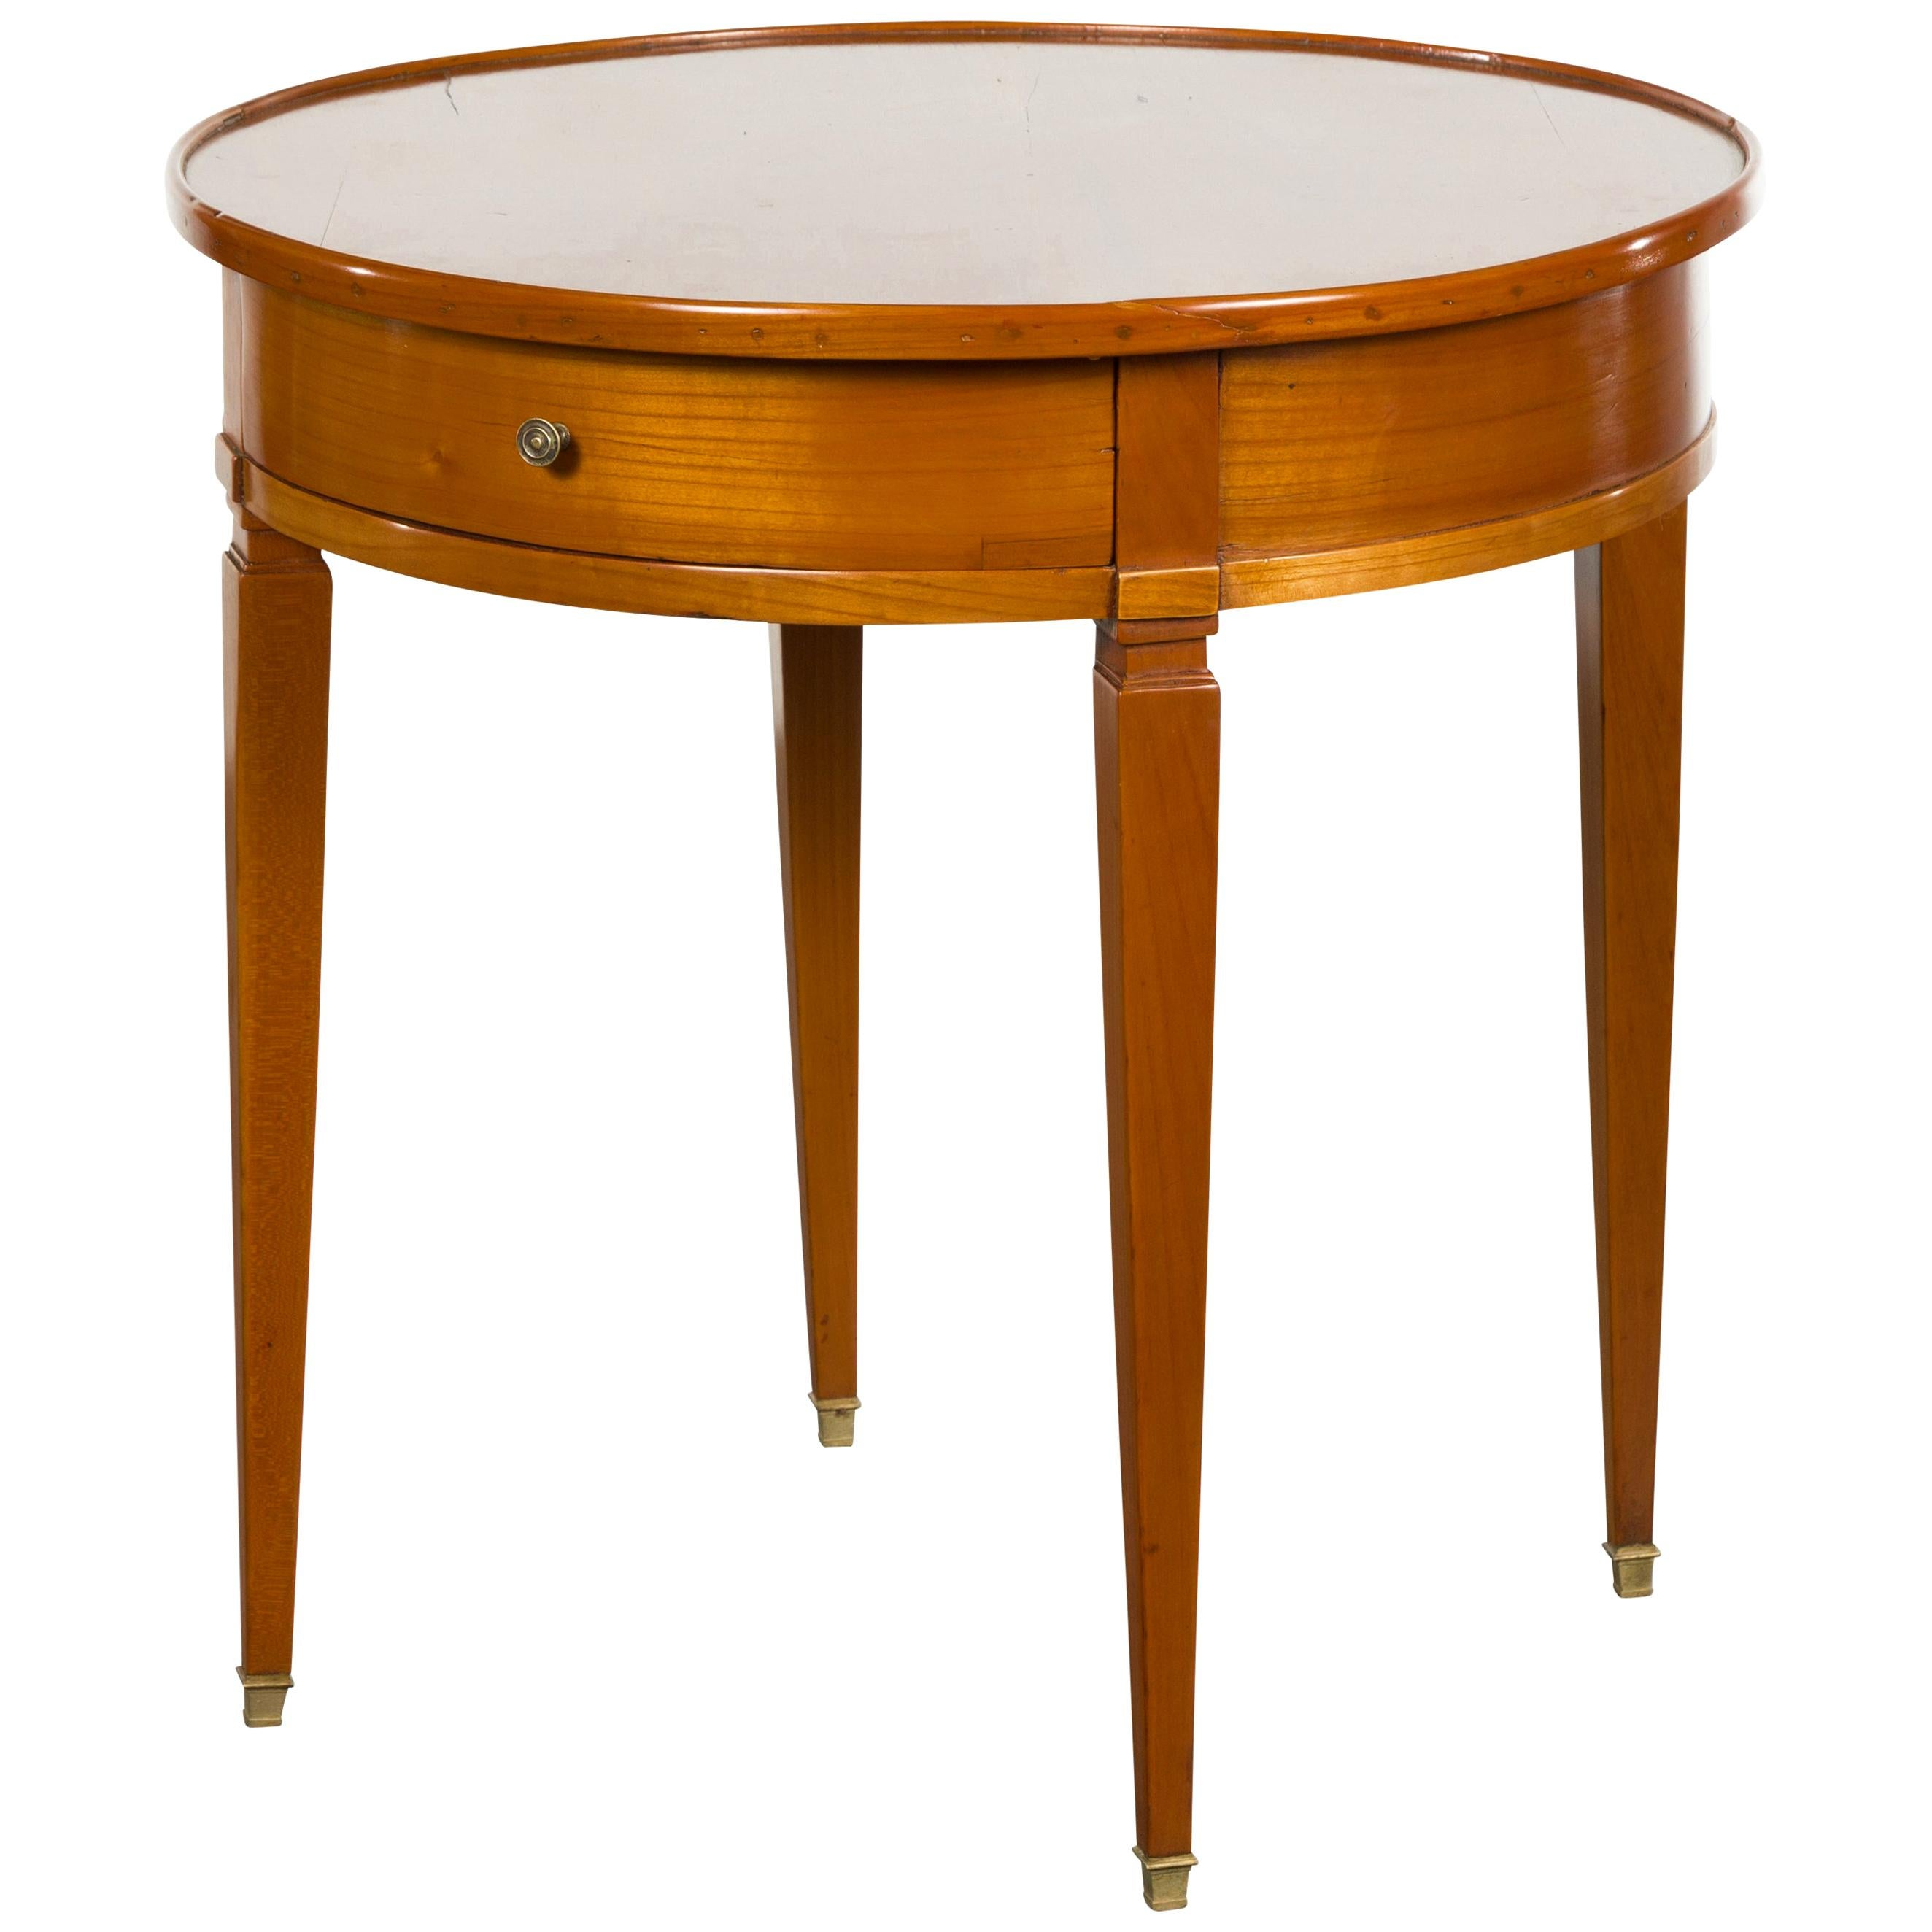 French Napoléon III 1850s Walnut Side Table with Single Drawer and Tapered Legs